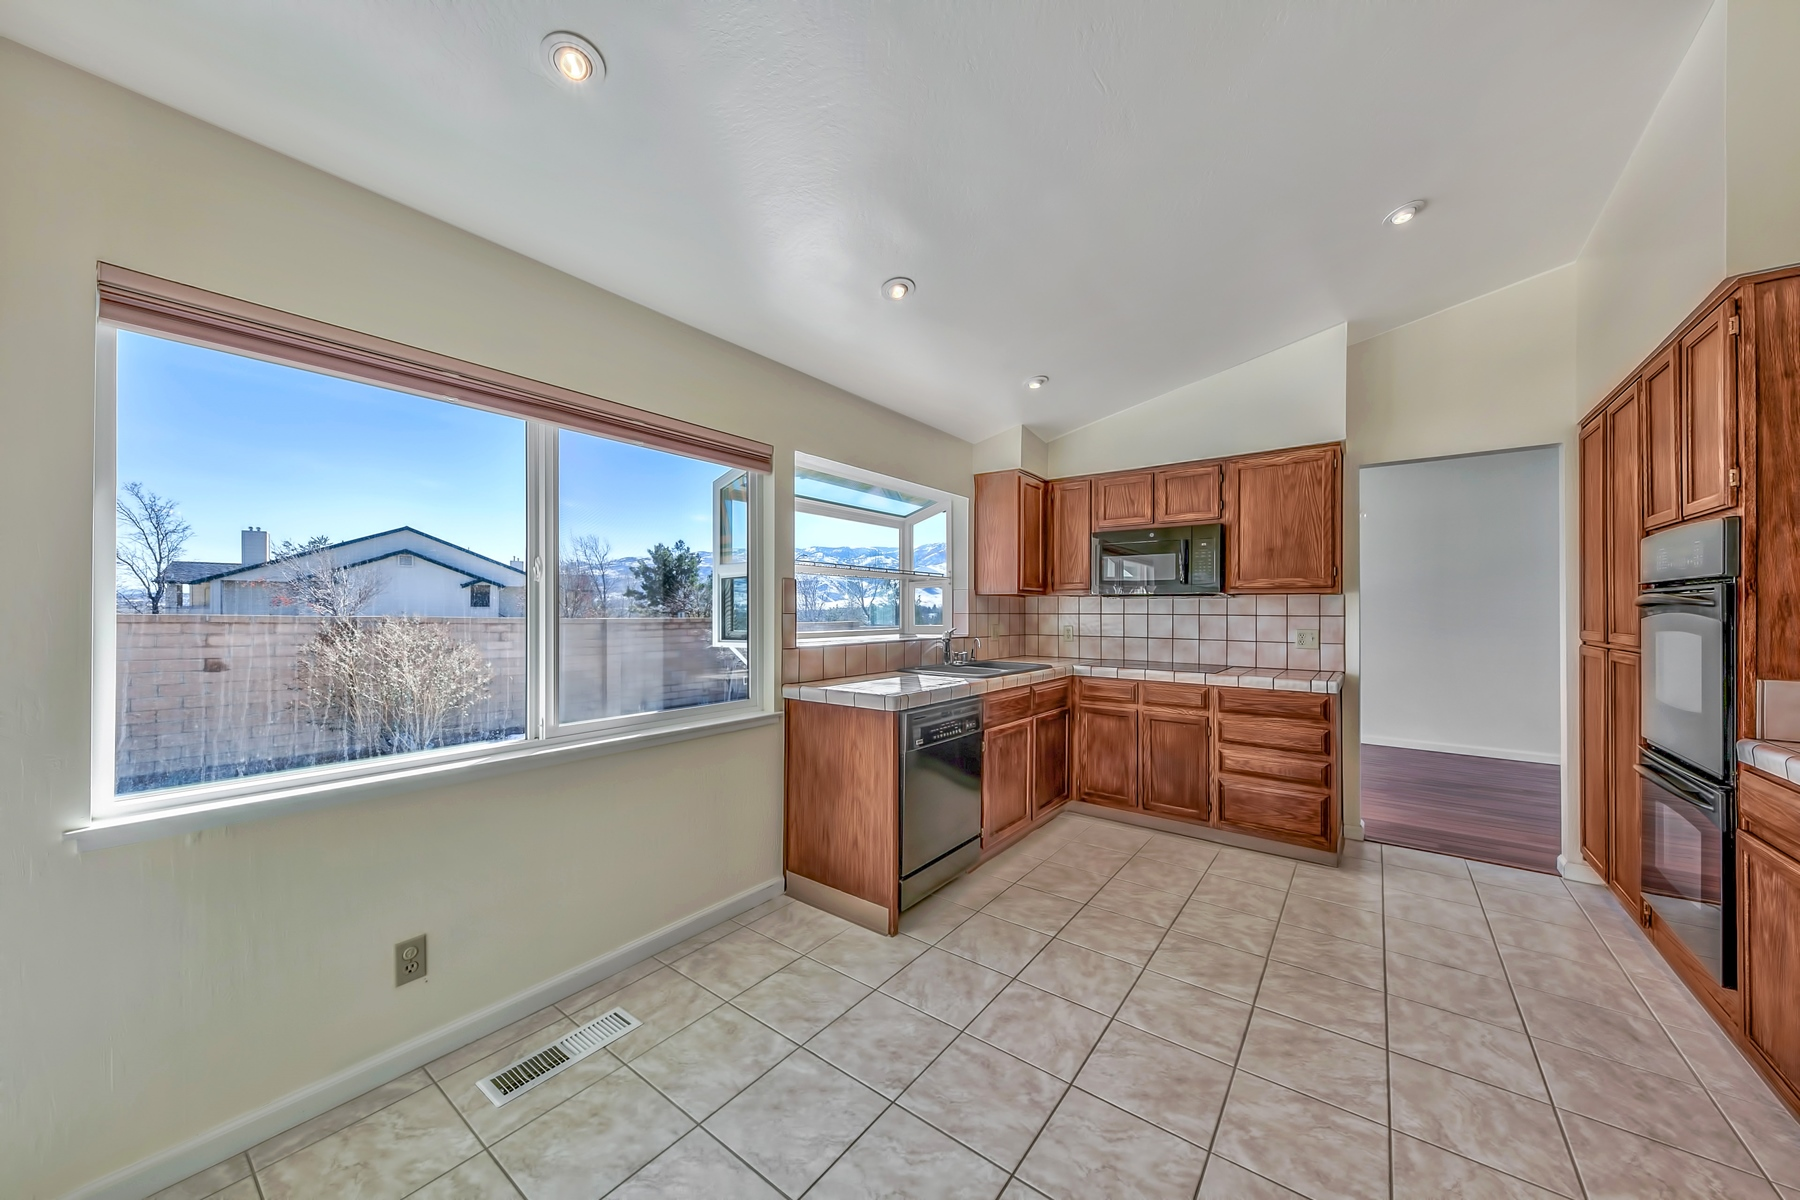 Additional photo for property listing at 6350 Fairhaven Place, Reno, Nevada 89523 6350 Fairhaven Place Reno, Nevada 89523 United States